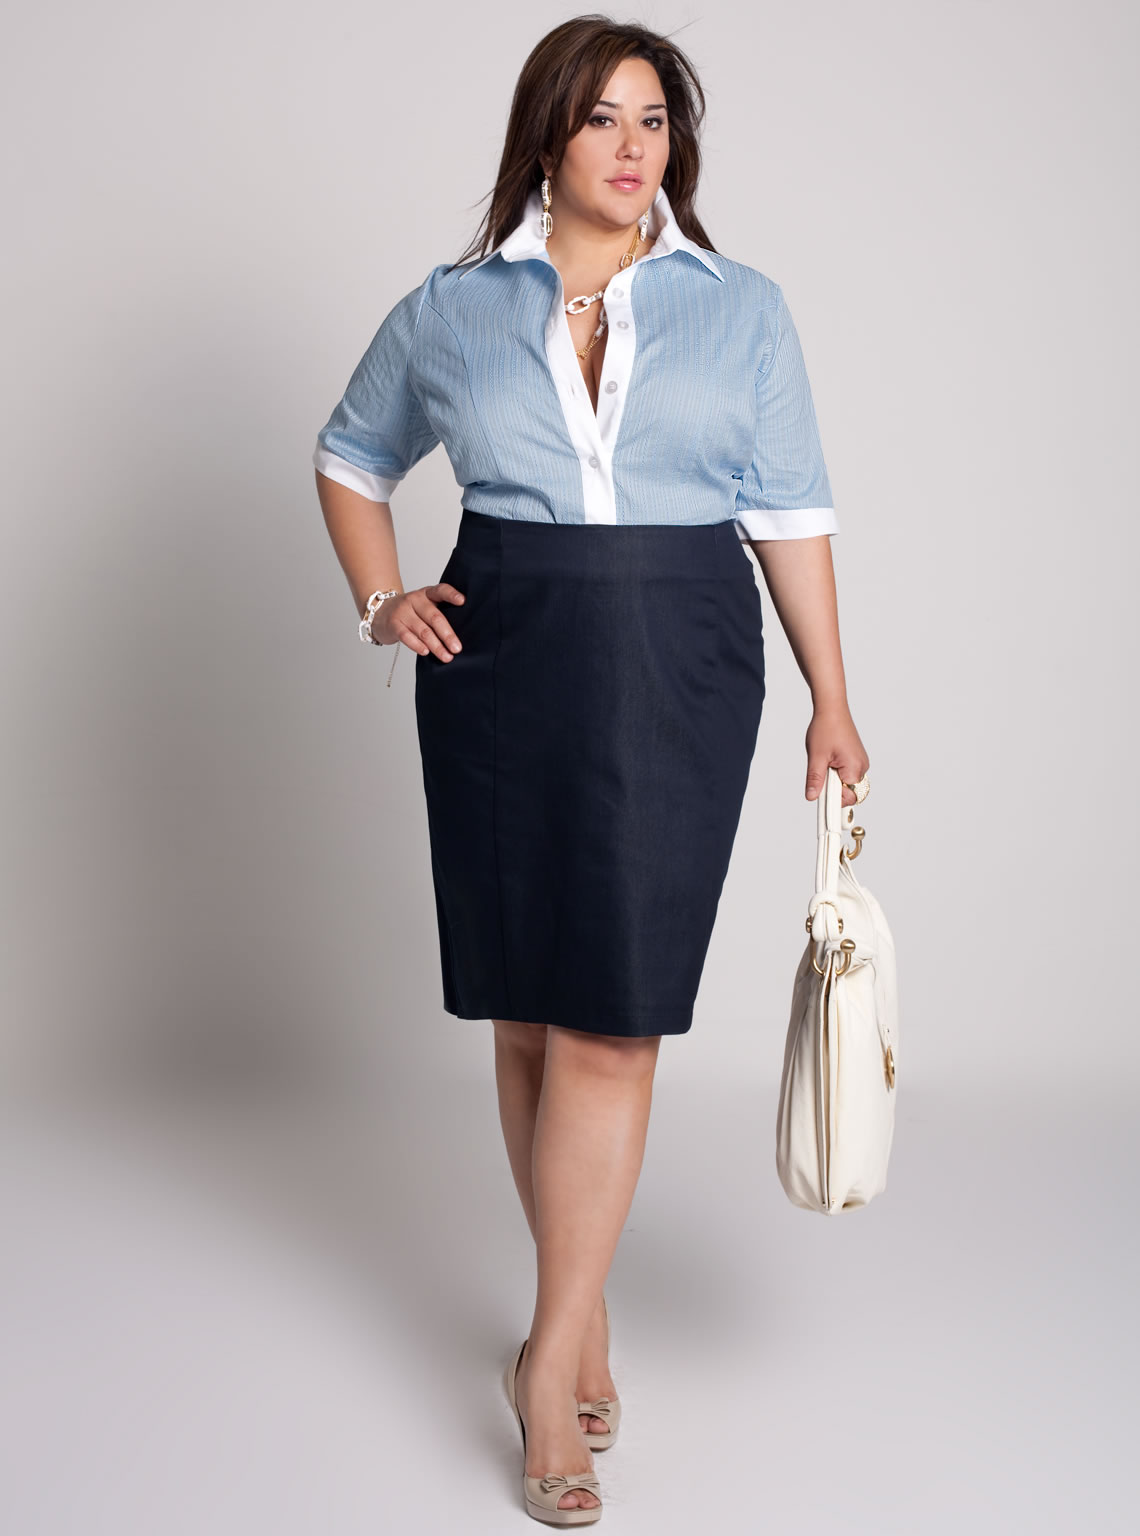 Slimming Fashion For Plus Size